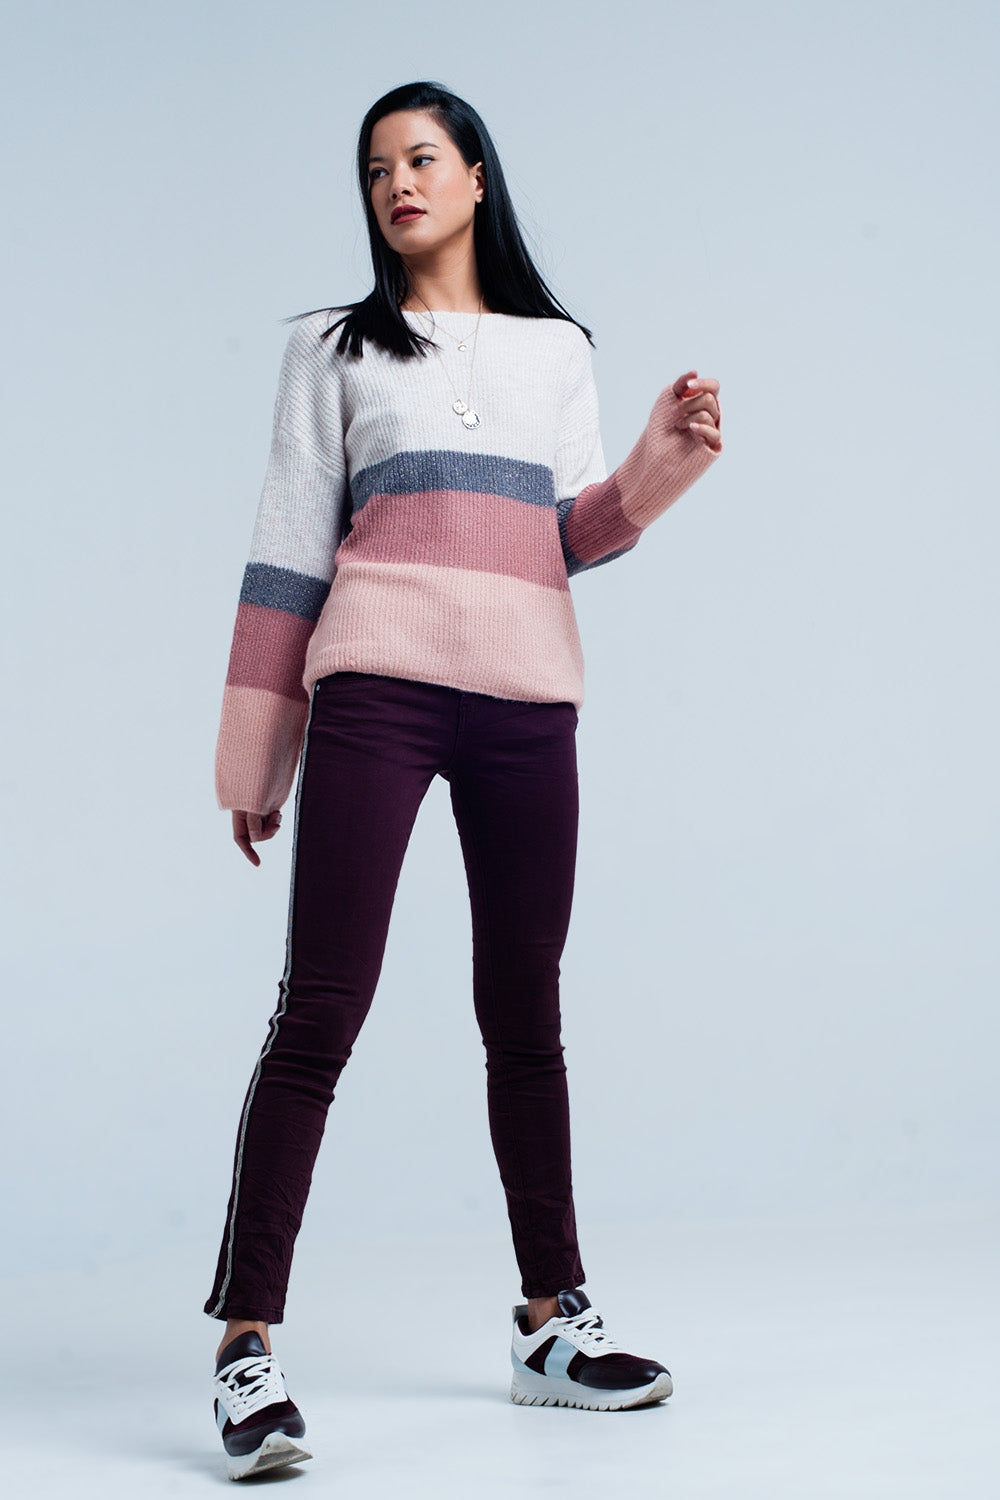 Pink Striped Sweater With Glitter Lurex-Women - Apparel - Sweaters - Pull Over-Product Details This glamorous pullover is nice and soft and chunky knitted. The pullover has wide long sleeves and a round neck. The pattern is striped with colors as light pink dark pink cream and silver with glitters. The sweater has a boat neck and is from super comfy and soft mixed fabrics.-Keyomi-Sook